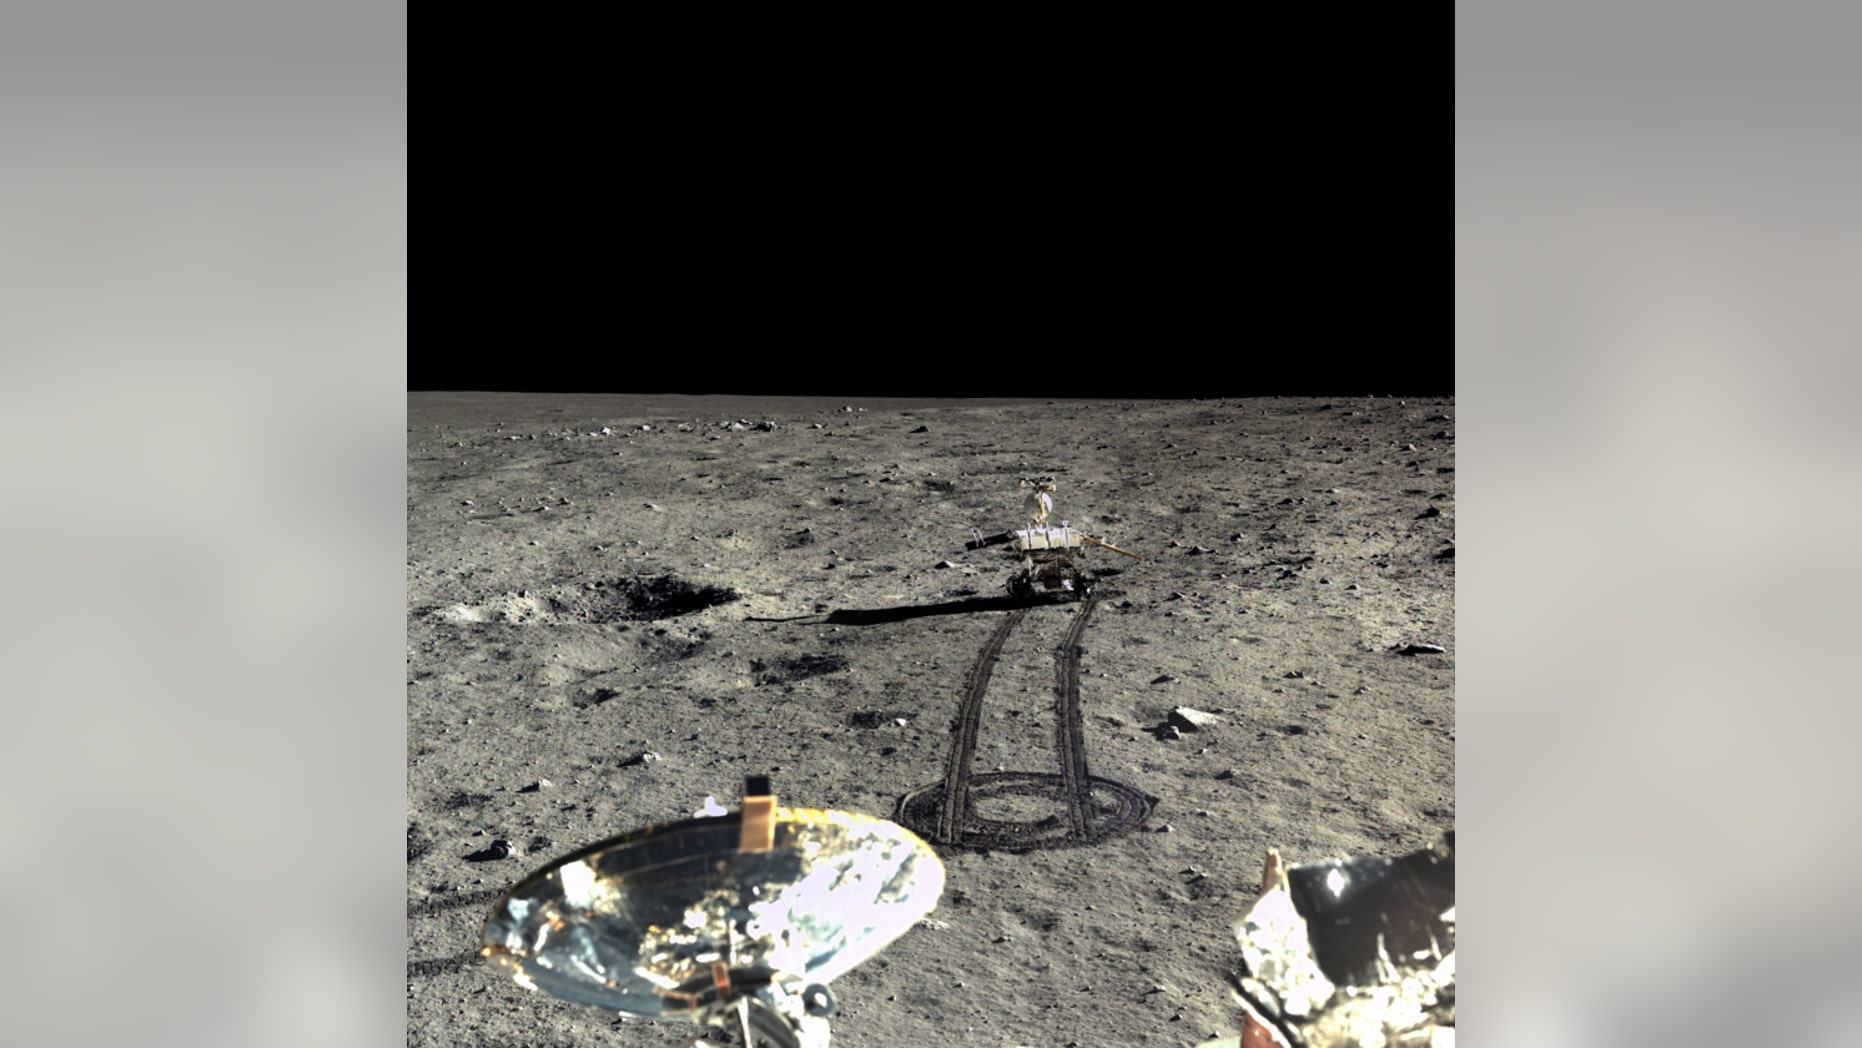 China's  Yutu moon rover (Chinese Academy of Sciences/China National Space Administration /The Science and Application Center for Moon and Deepspace Exploration/Emily Lakdawalla)